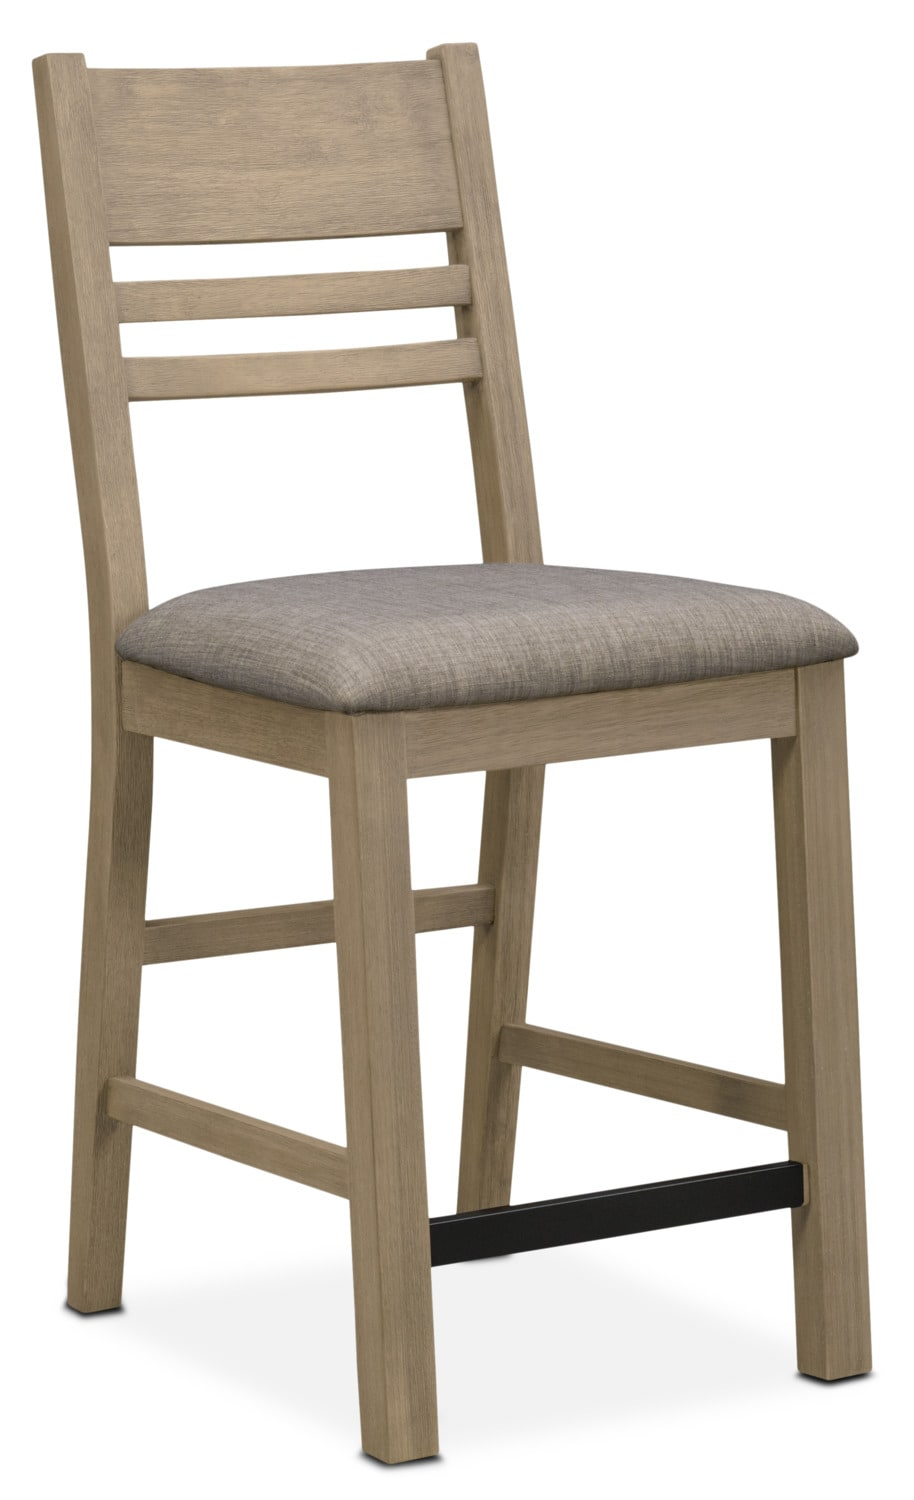 Tribeca Counter-Height Side Chair - Gray